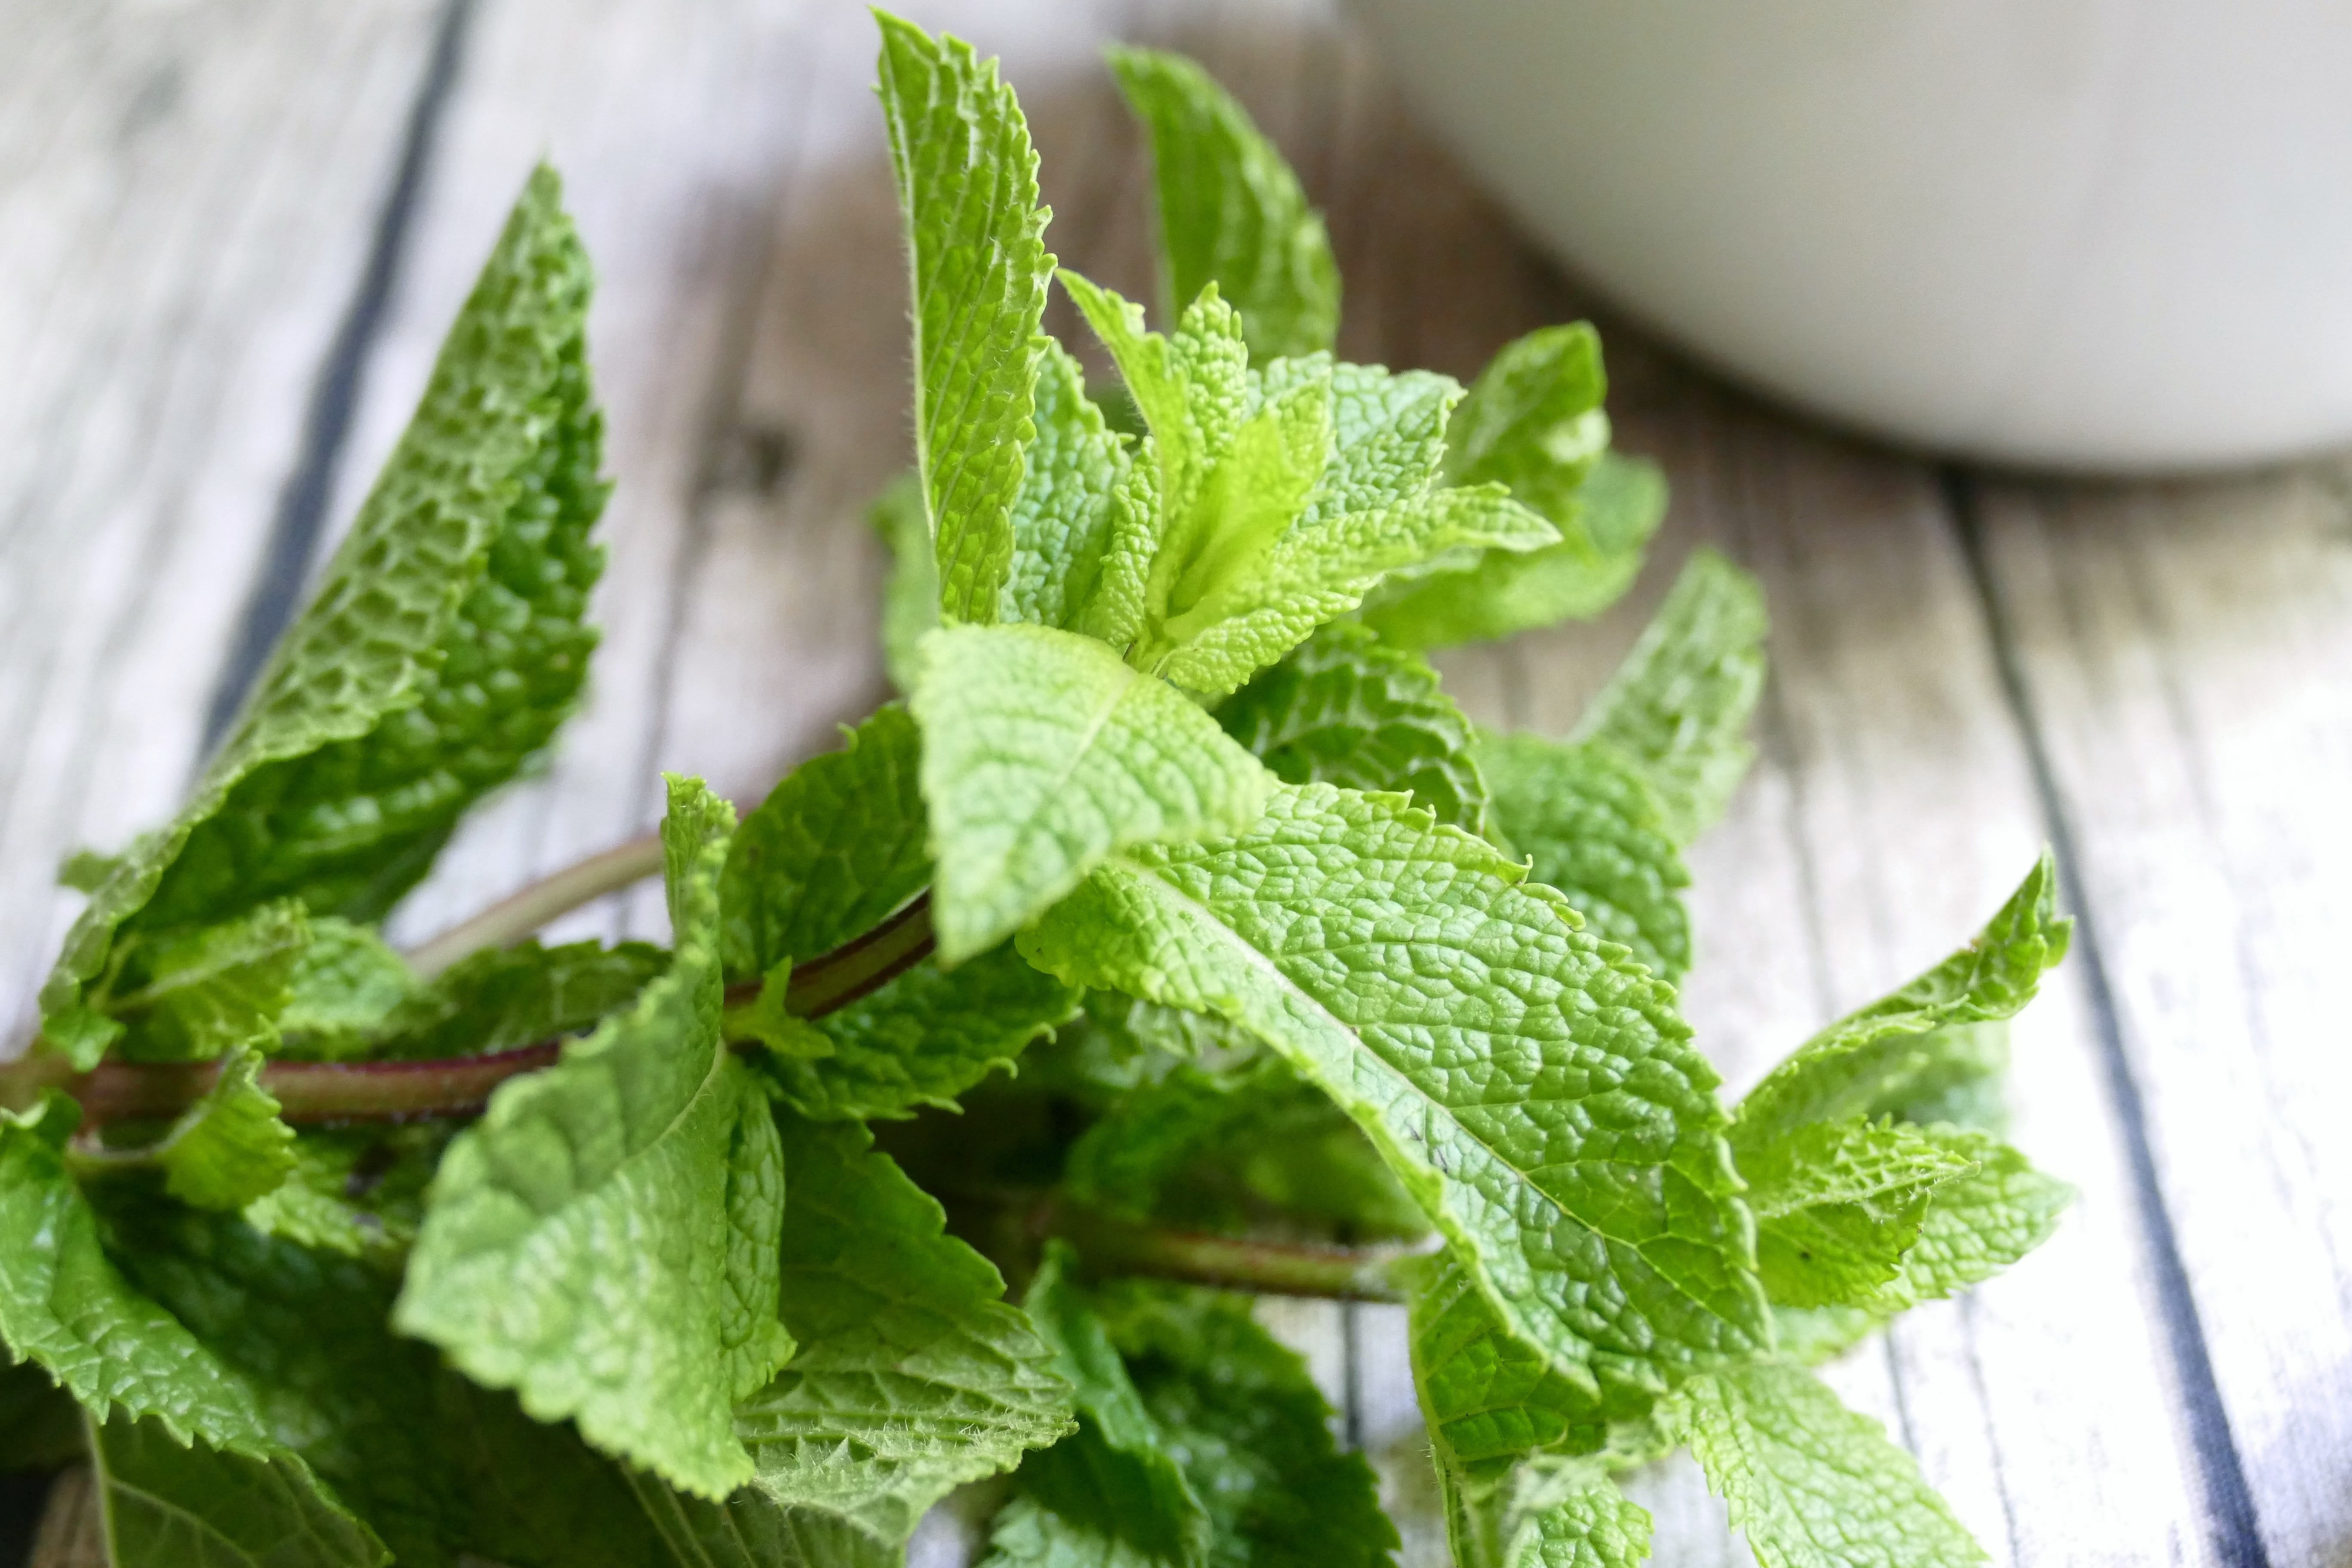 Peppermint leaves, from which peppermint oil is made